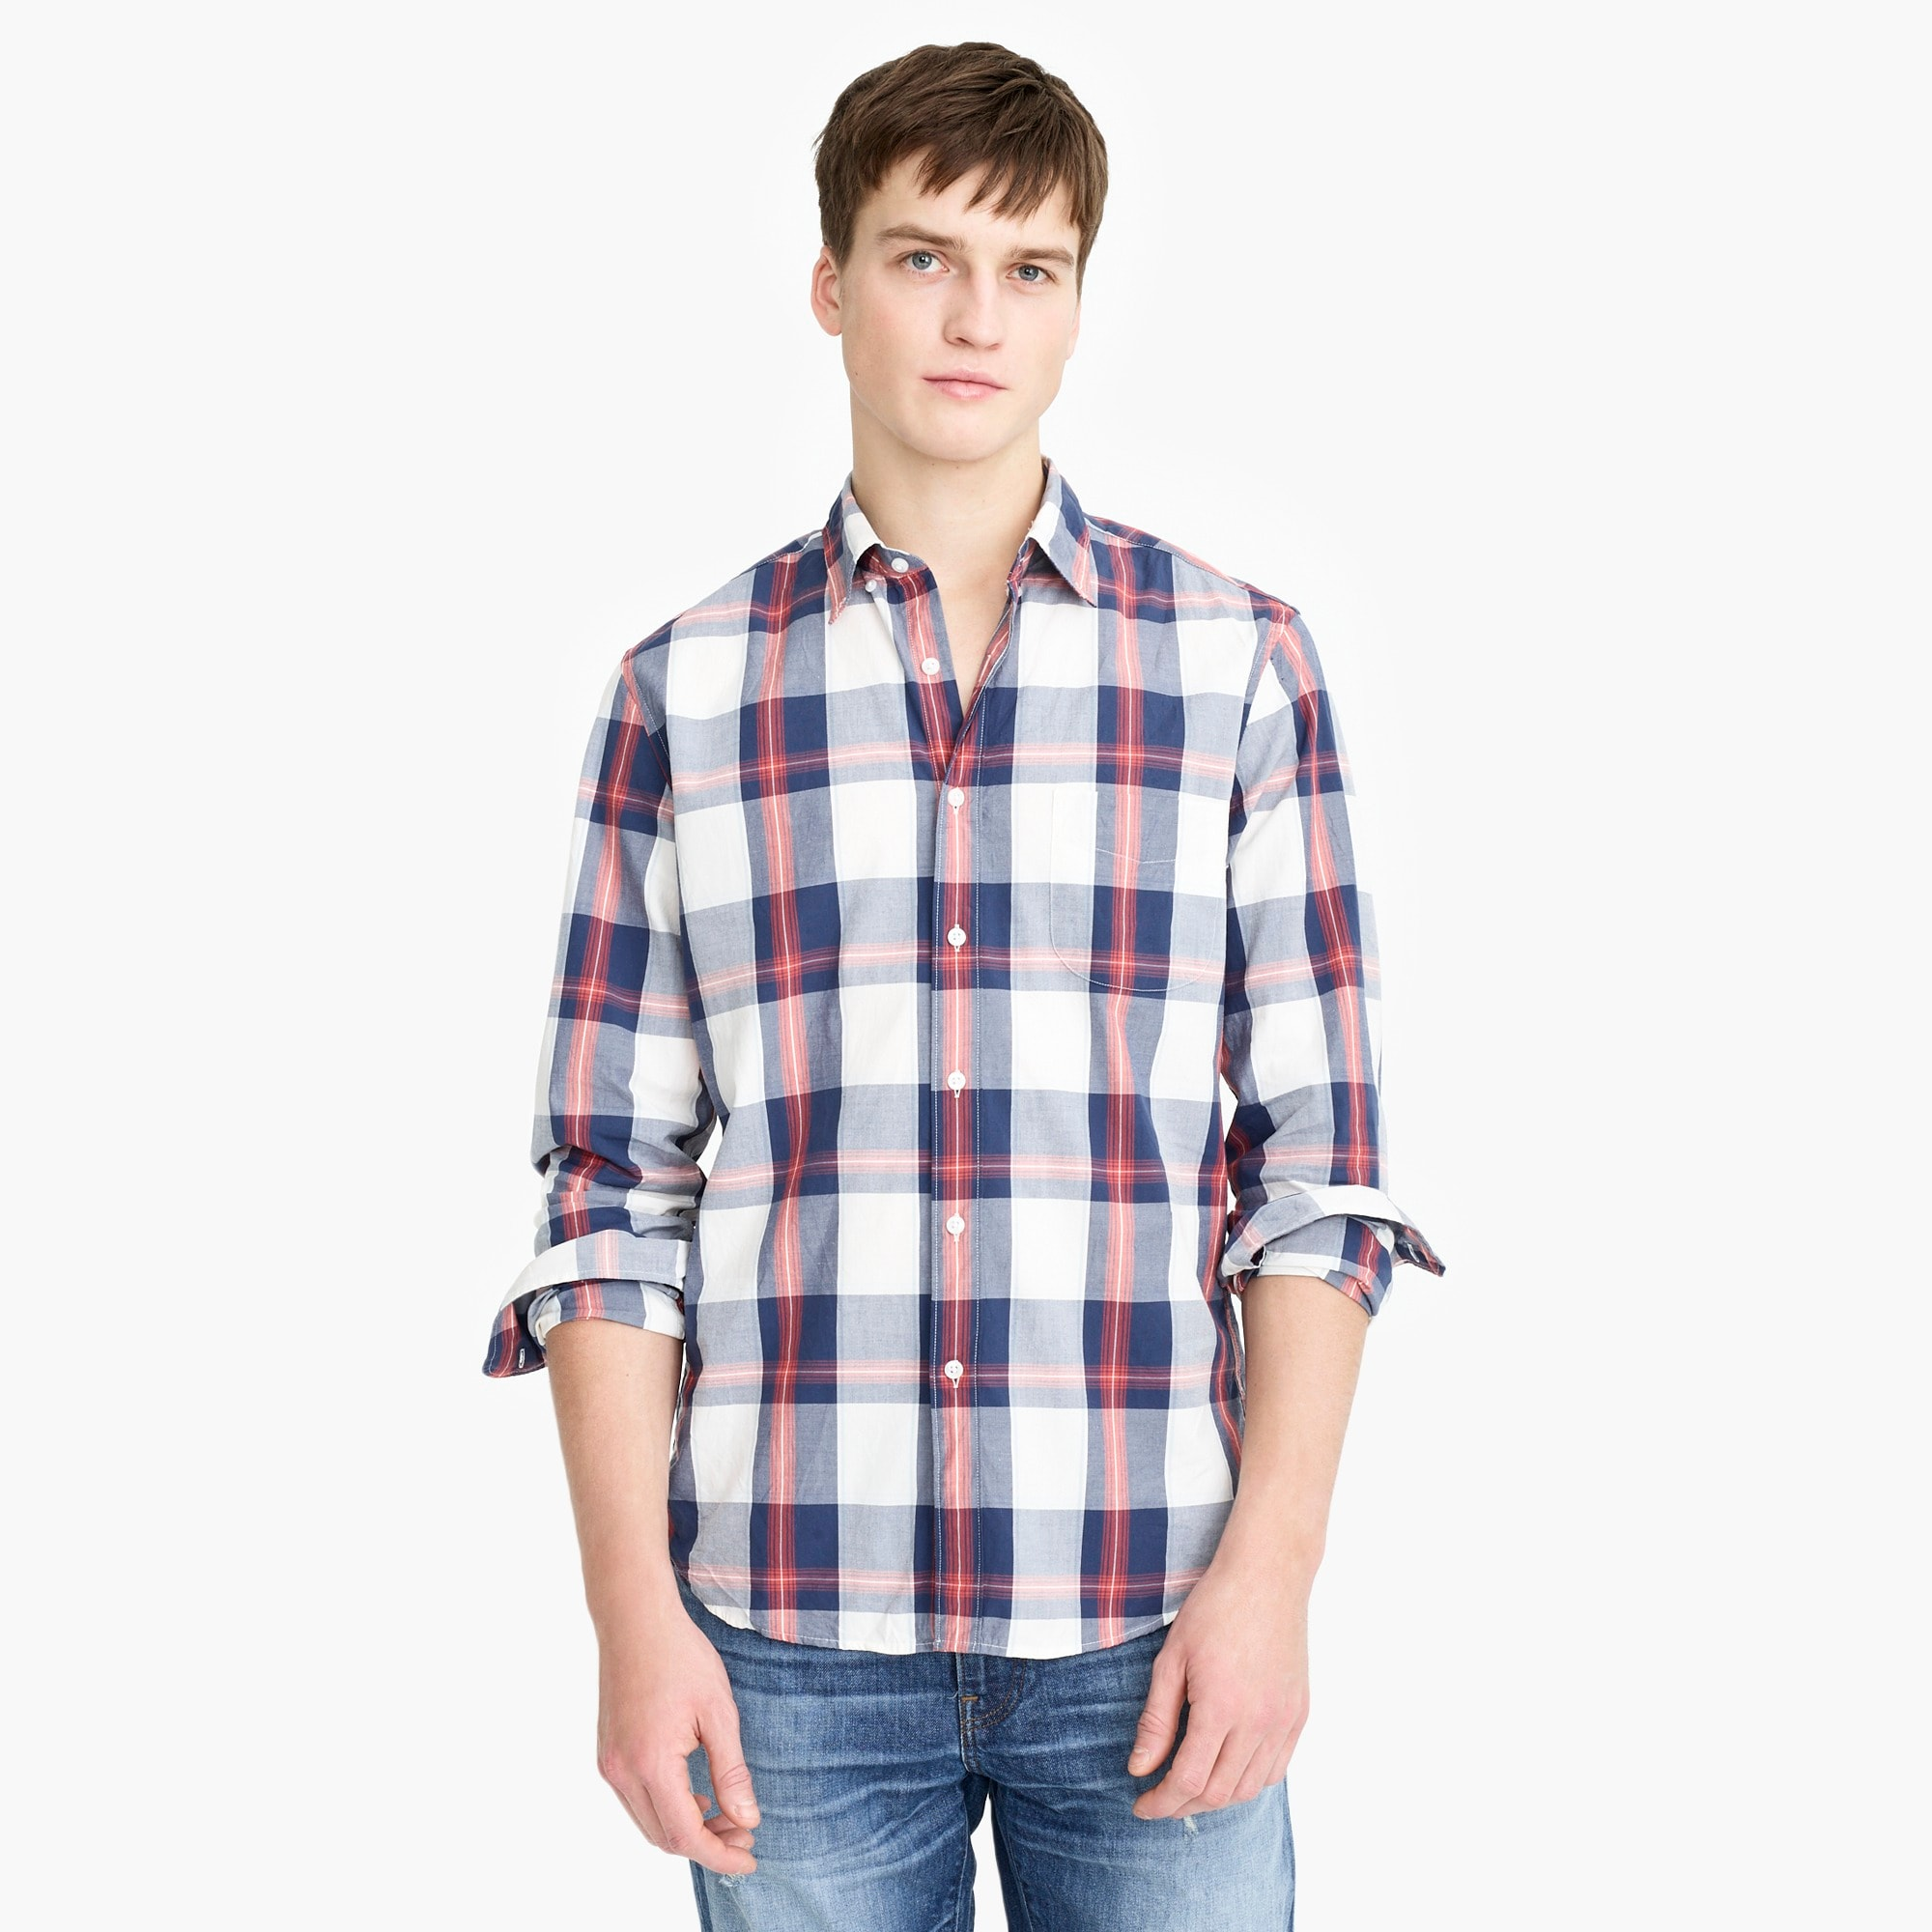 Untucked stretch Secret Wash shirt in tricolor plaid